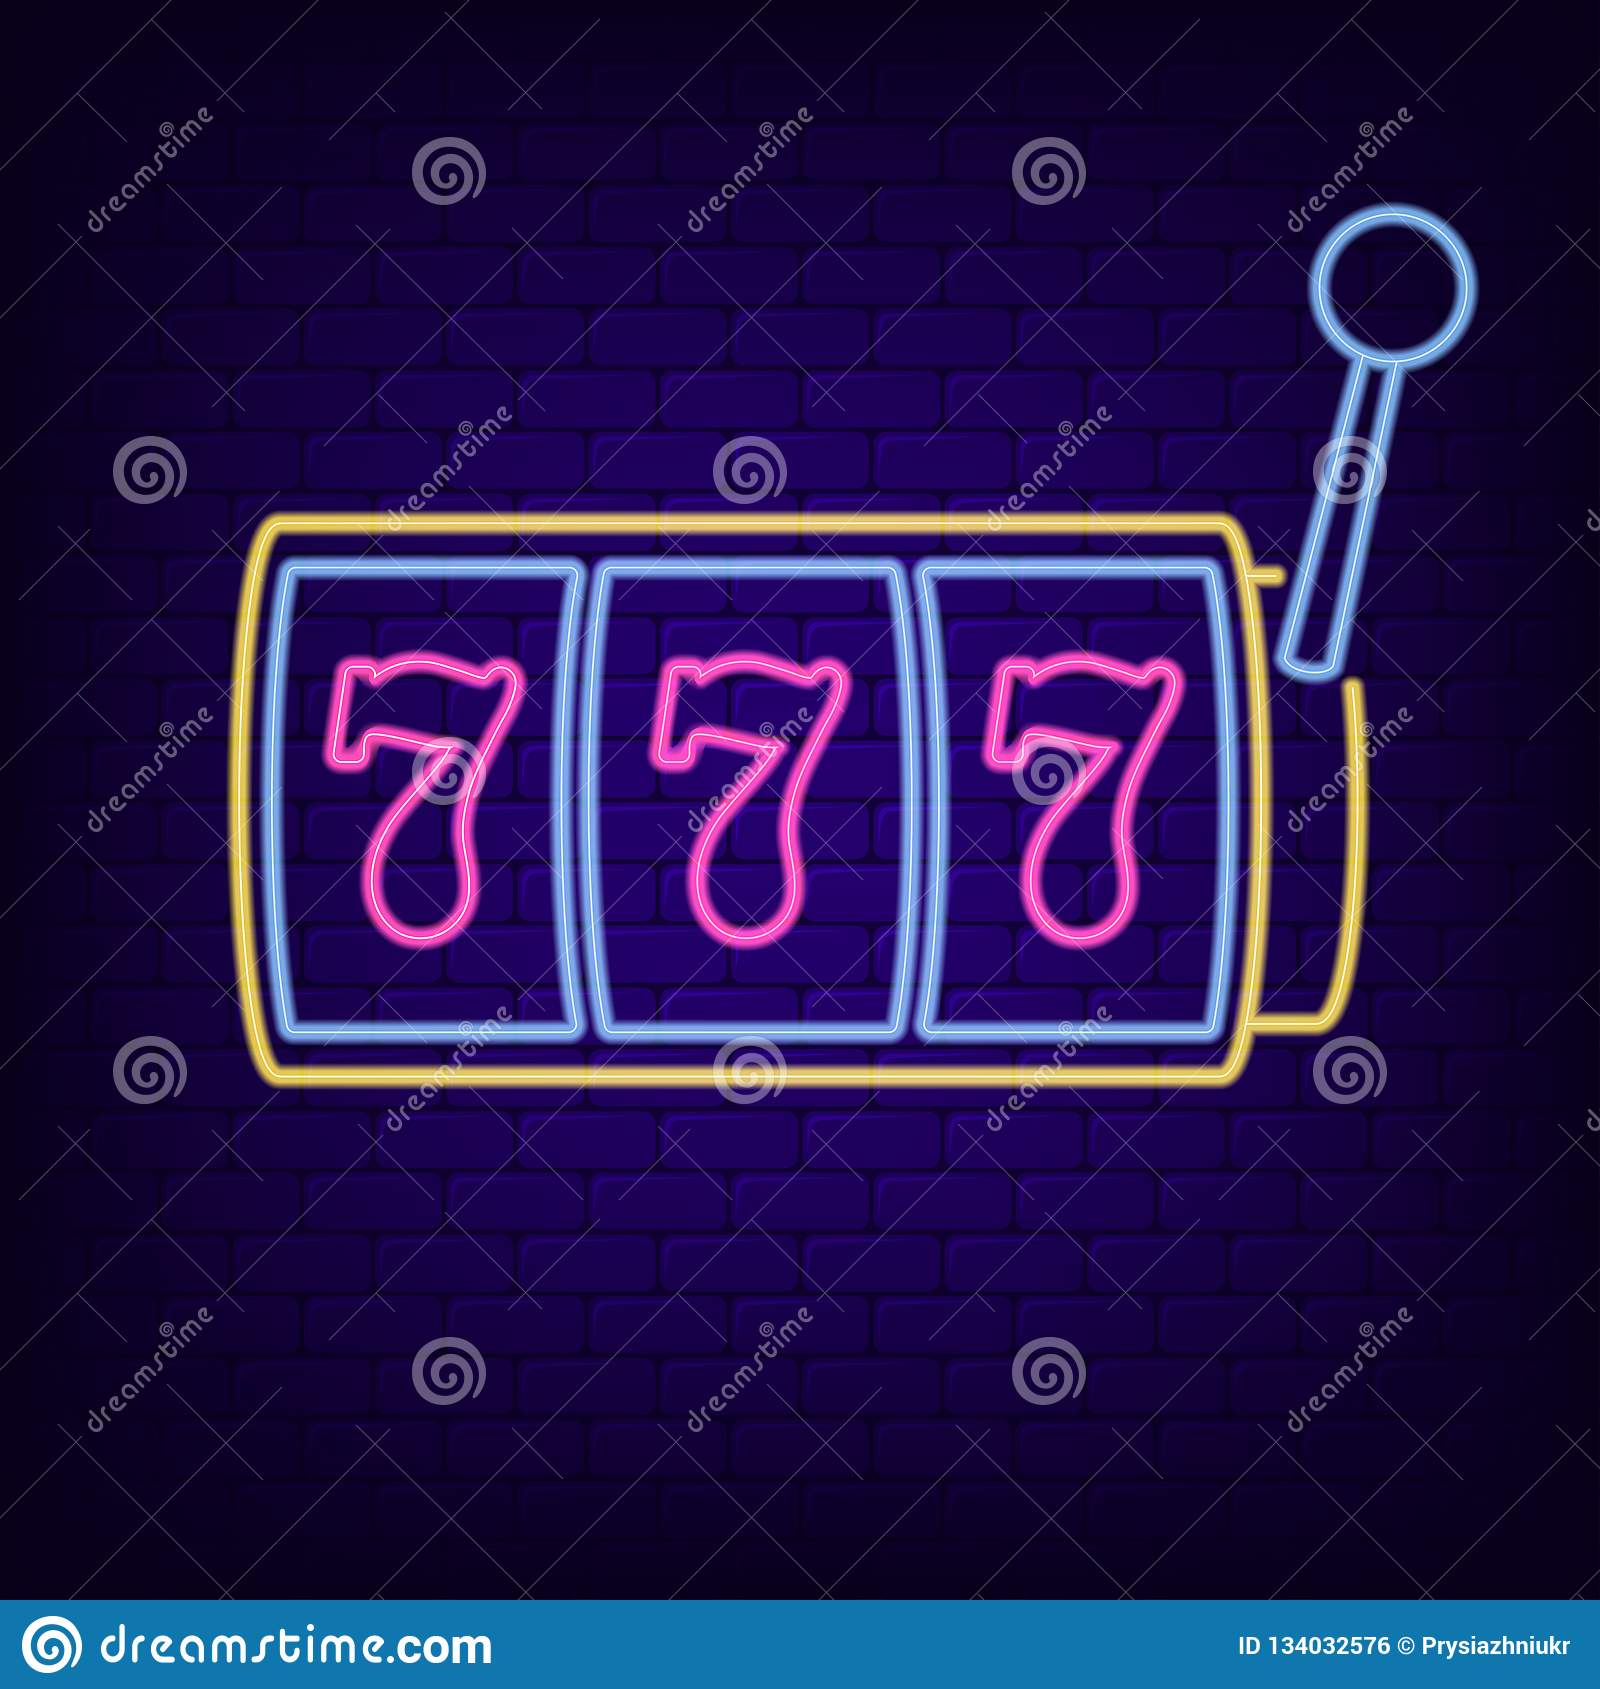 Neon sign of slot machine with lucky sevens jackpot. Casino gaming machine - night light neon signboard. Vector.